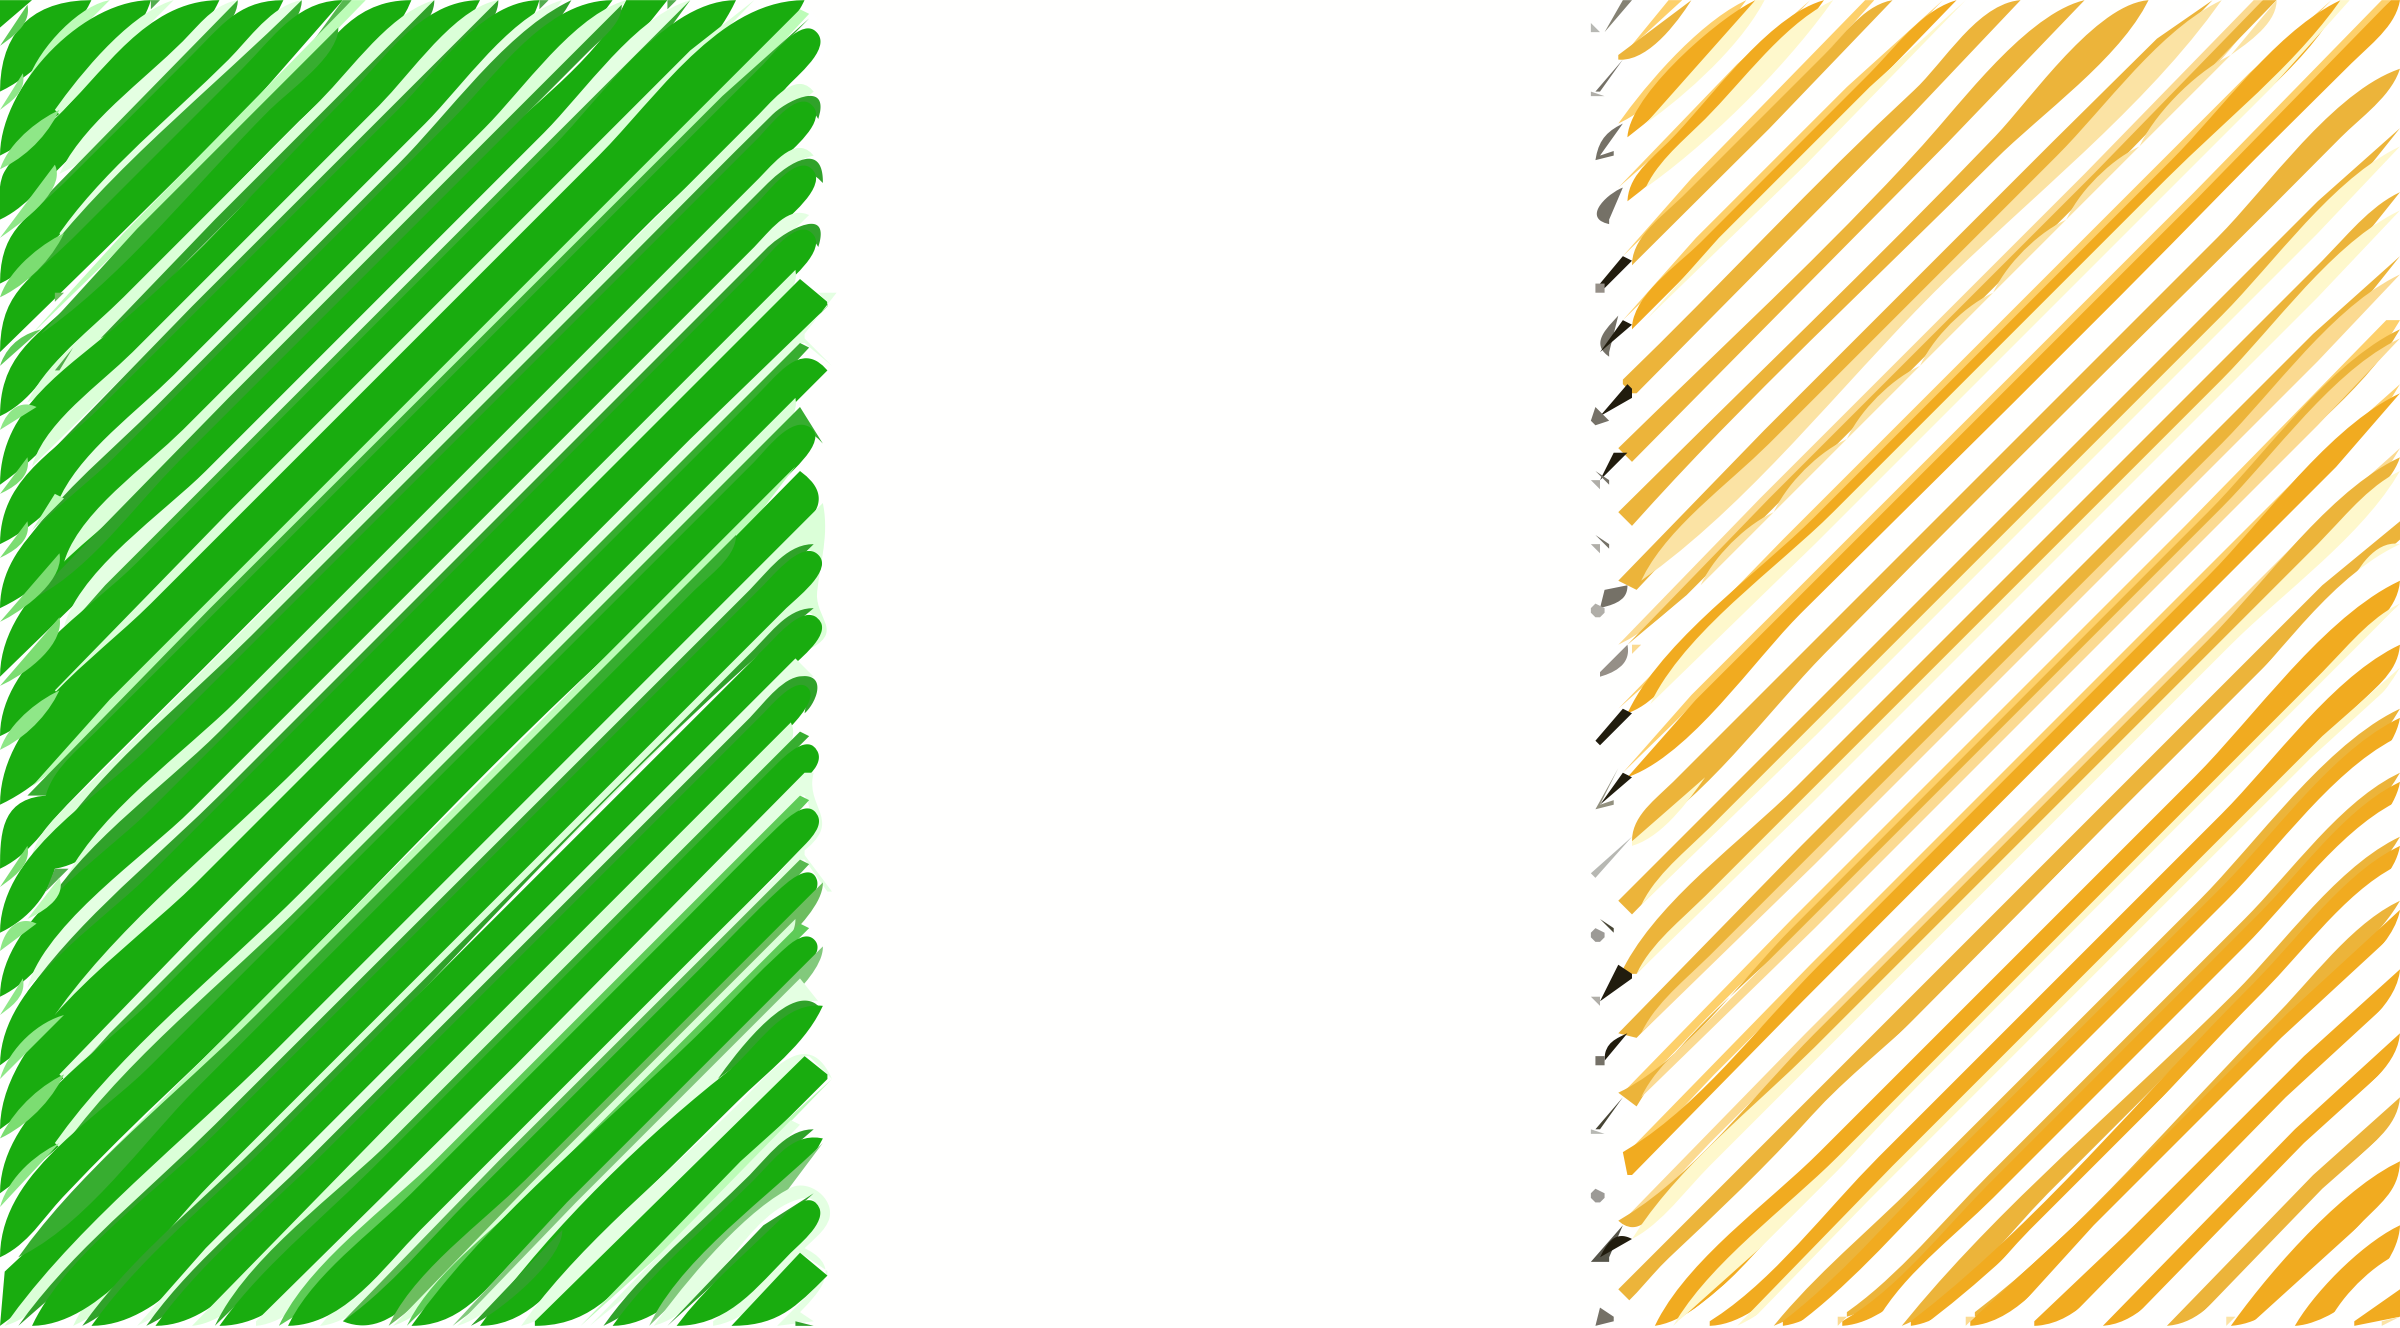 Ireland flag linear by Joesph